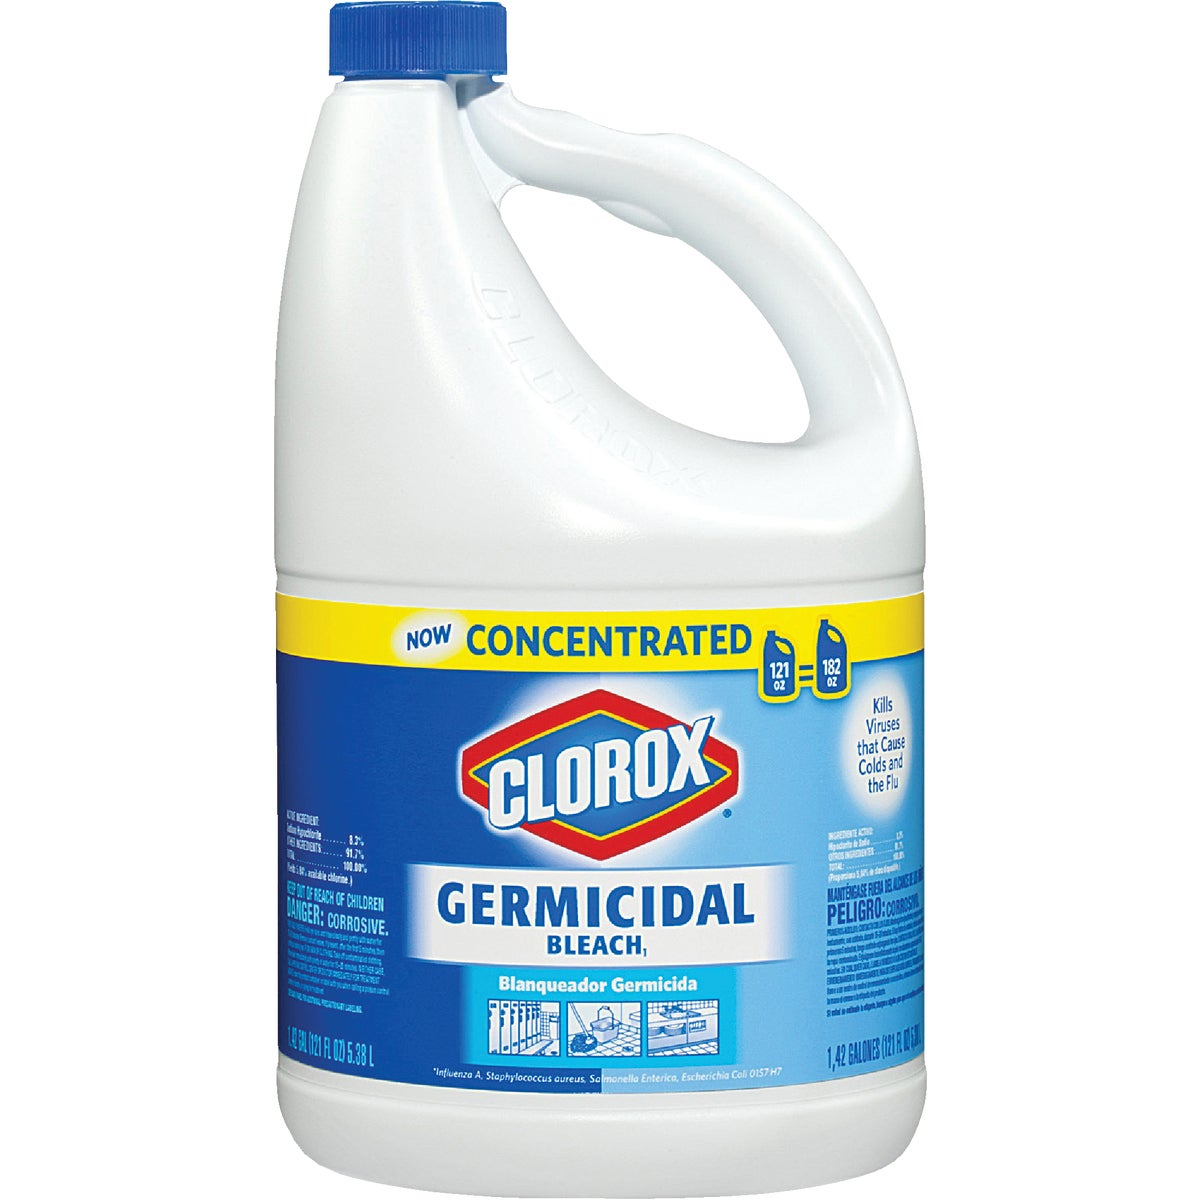 Clorox Germicidal Concentrated Liquid Bleach, 30790